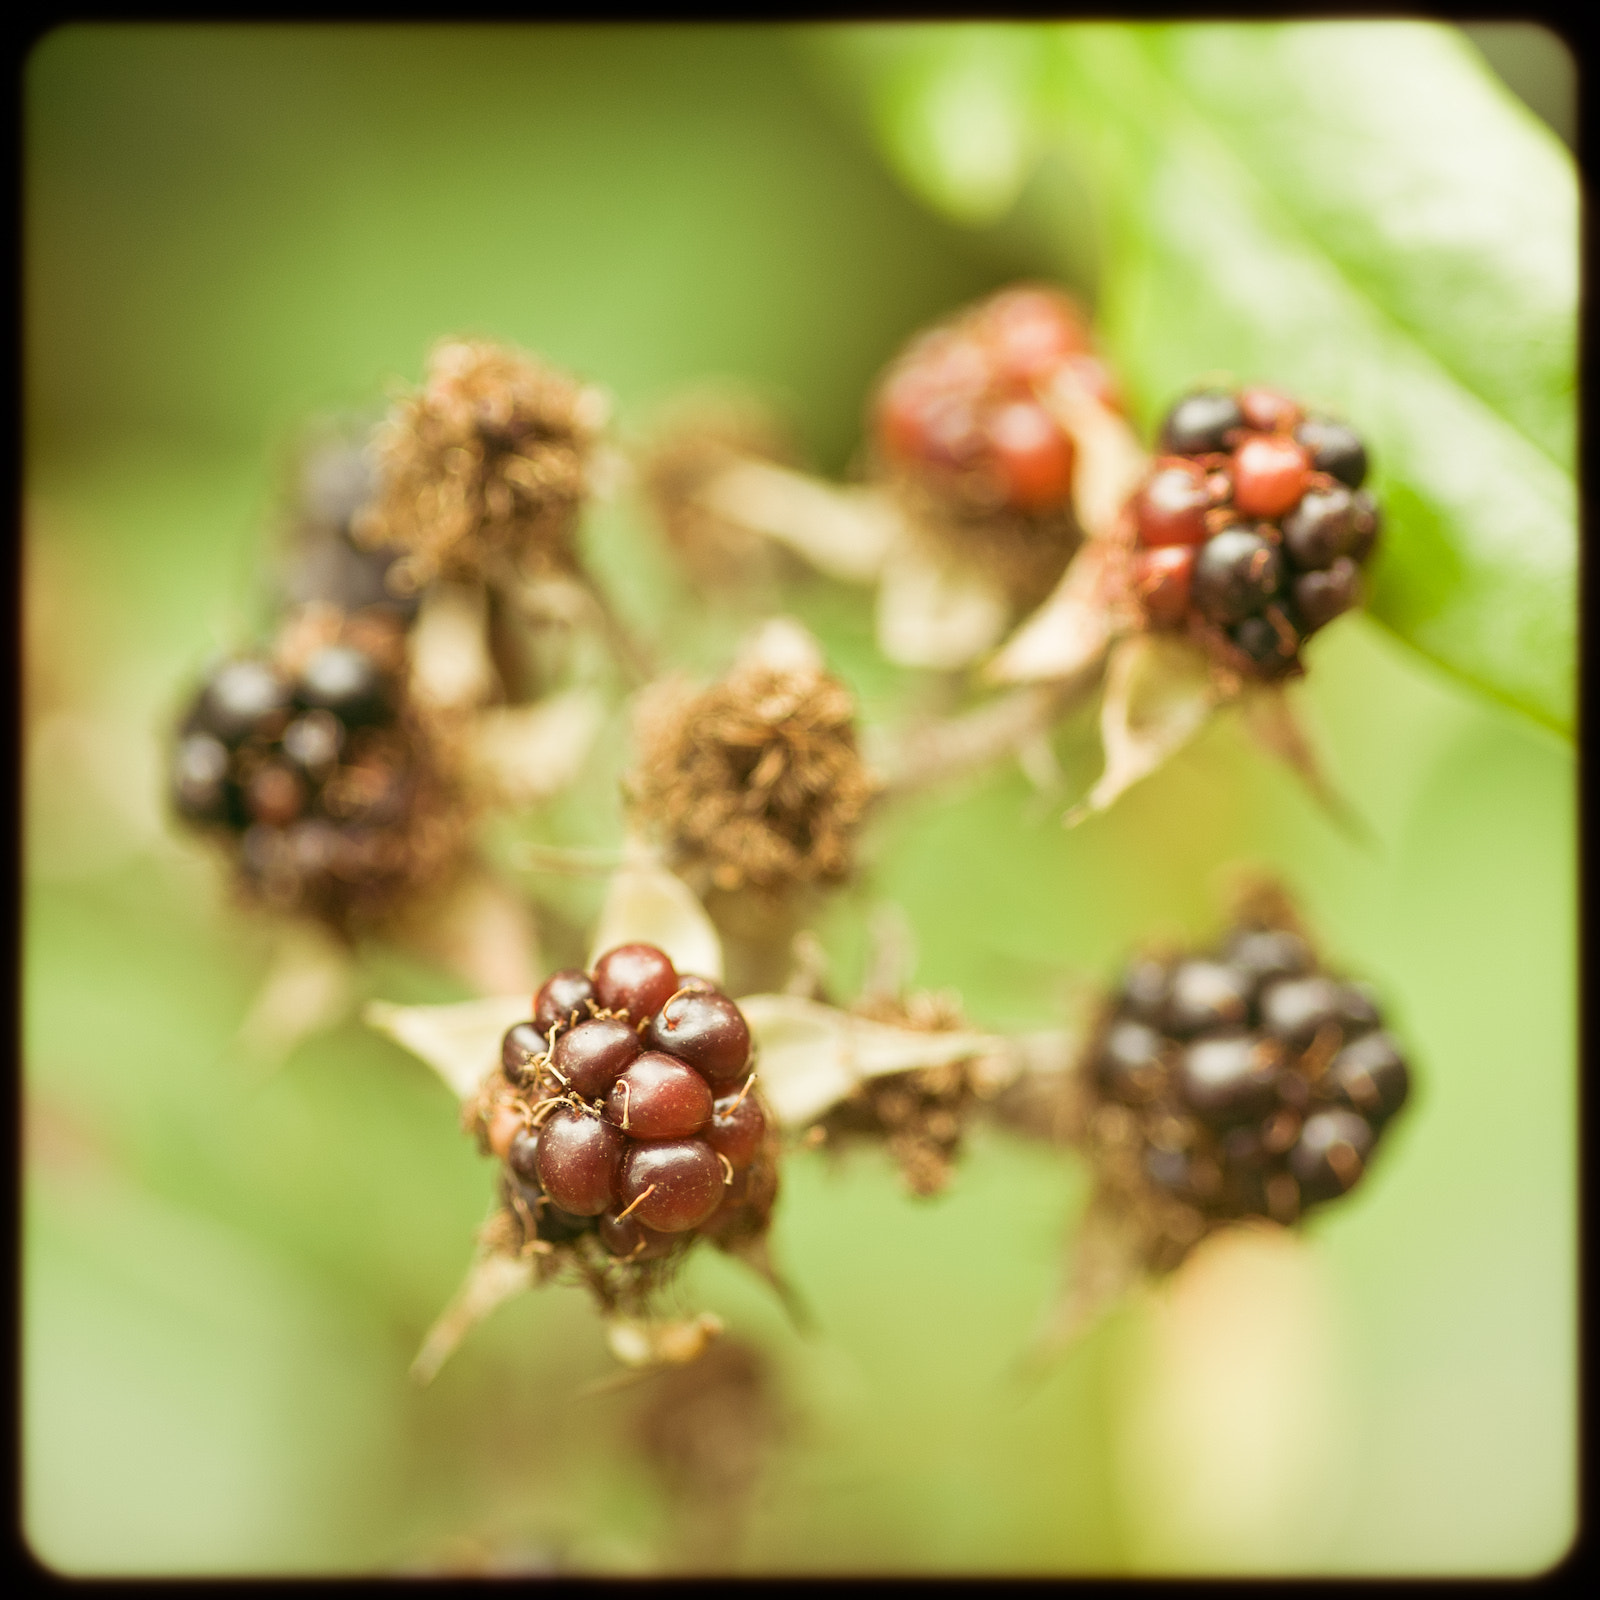 Photograph Wild Berries by Simon Vogt on 500px